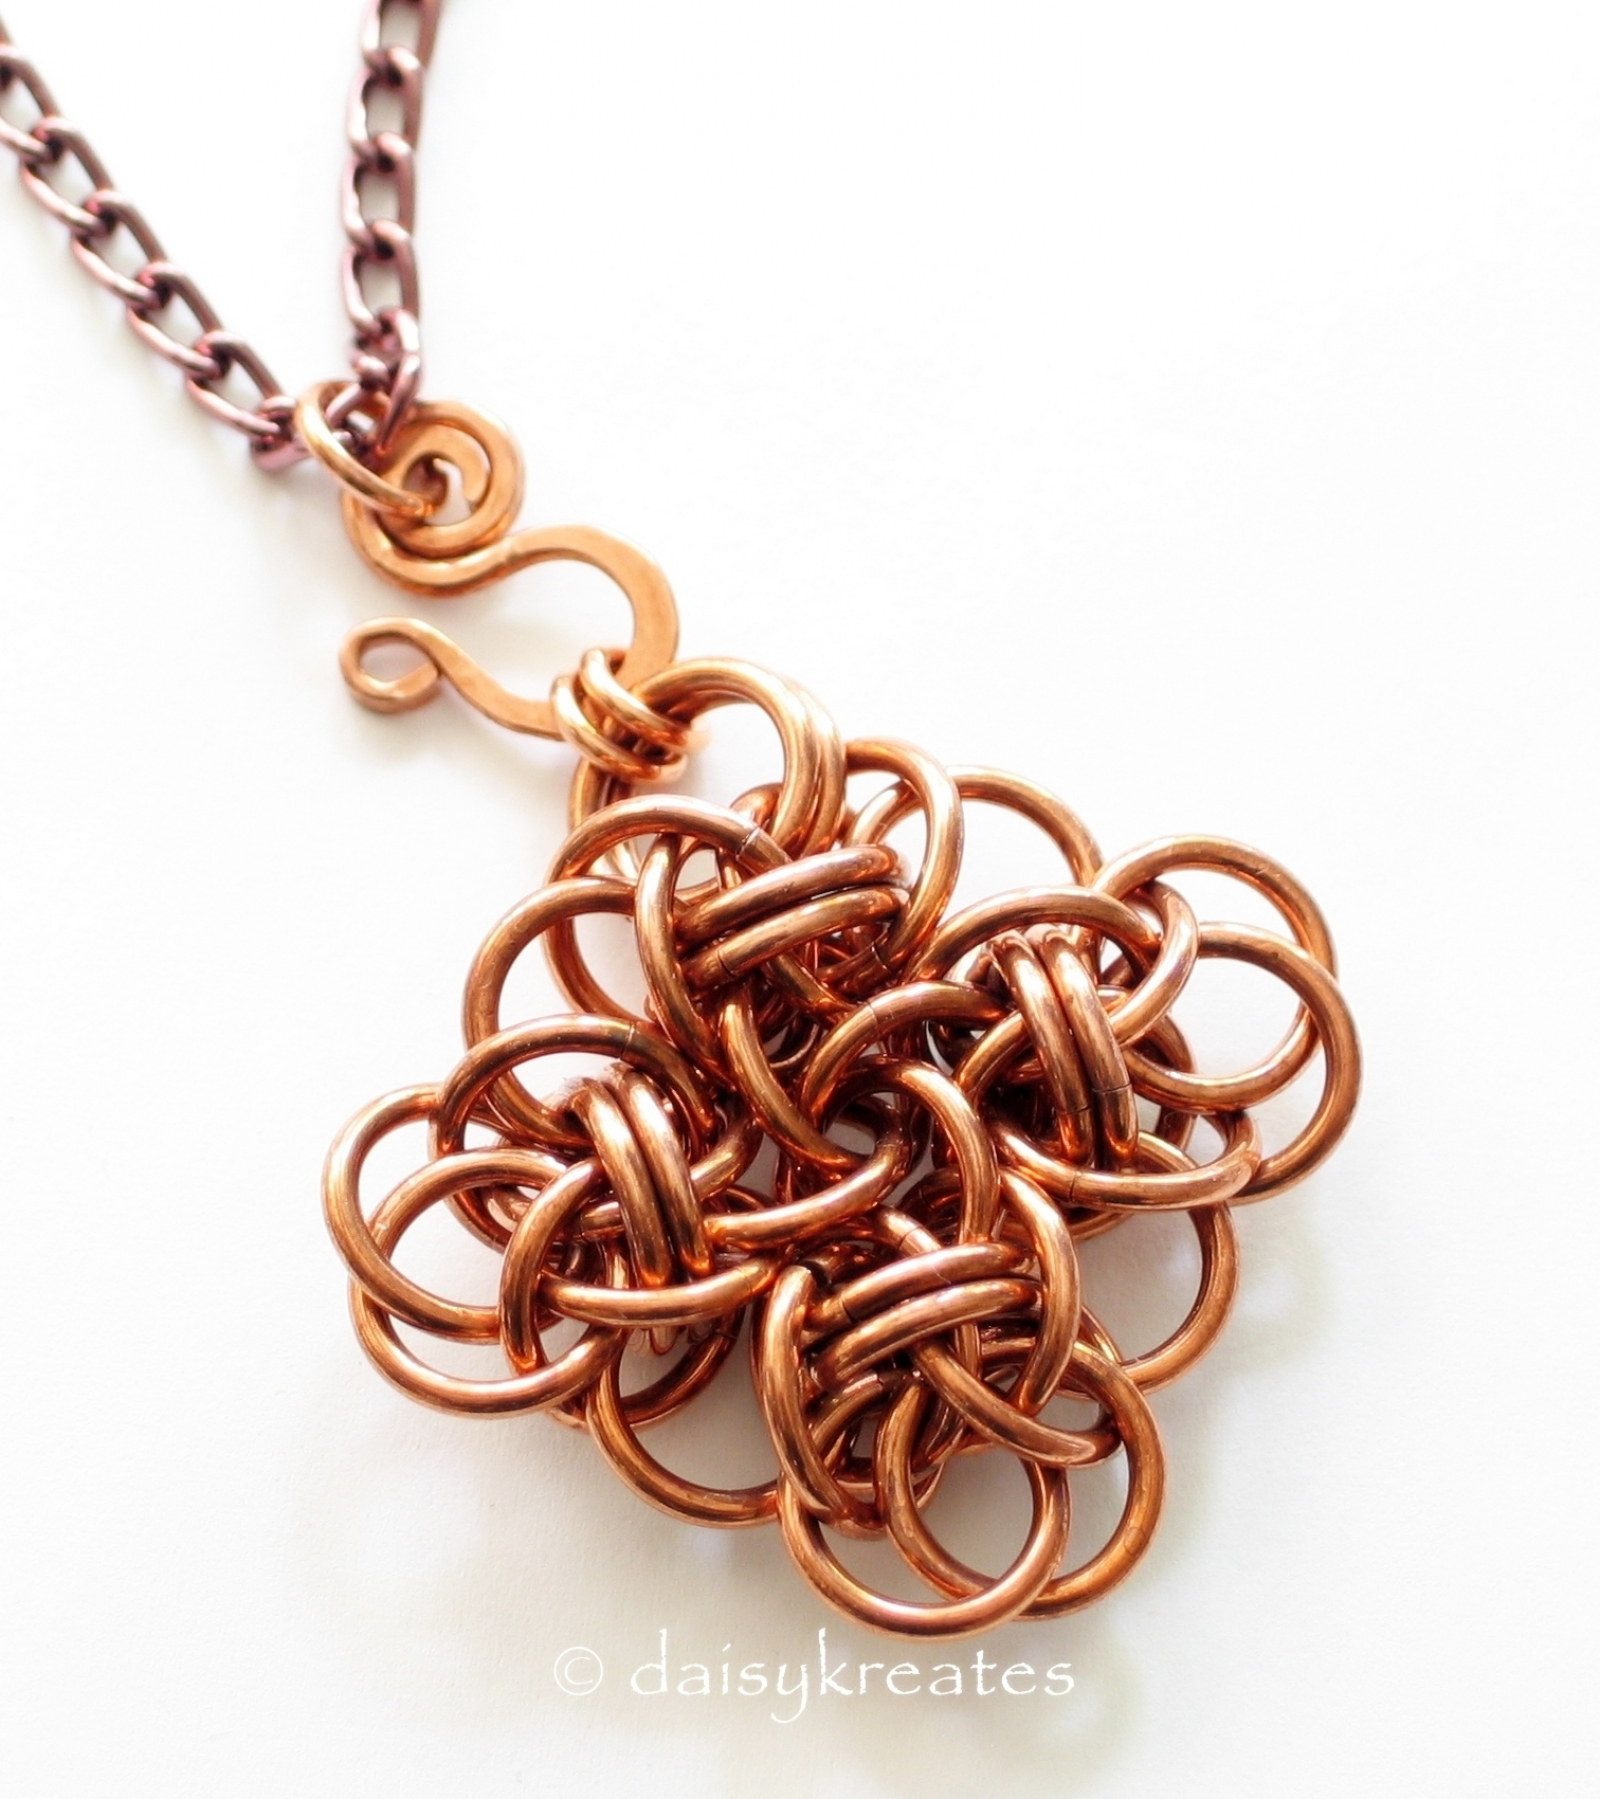 Copper chainmail persephone square knot pendant adjustable copper chainmaille persephone square pendant mozeypictures Image collections